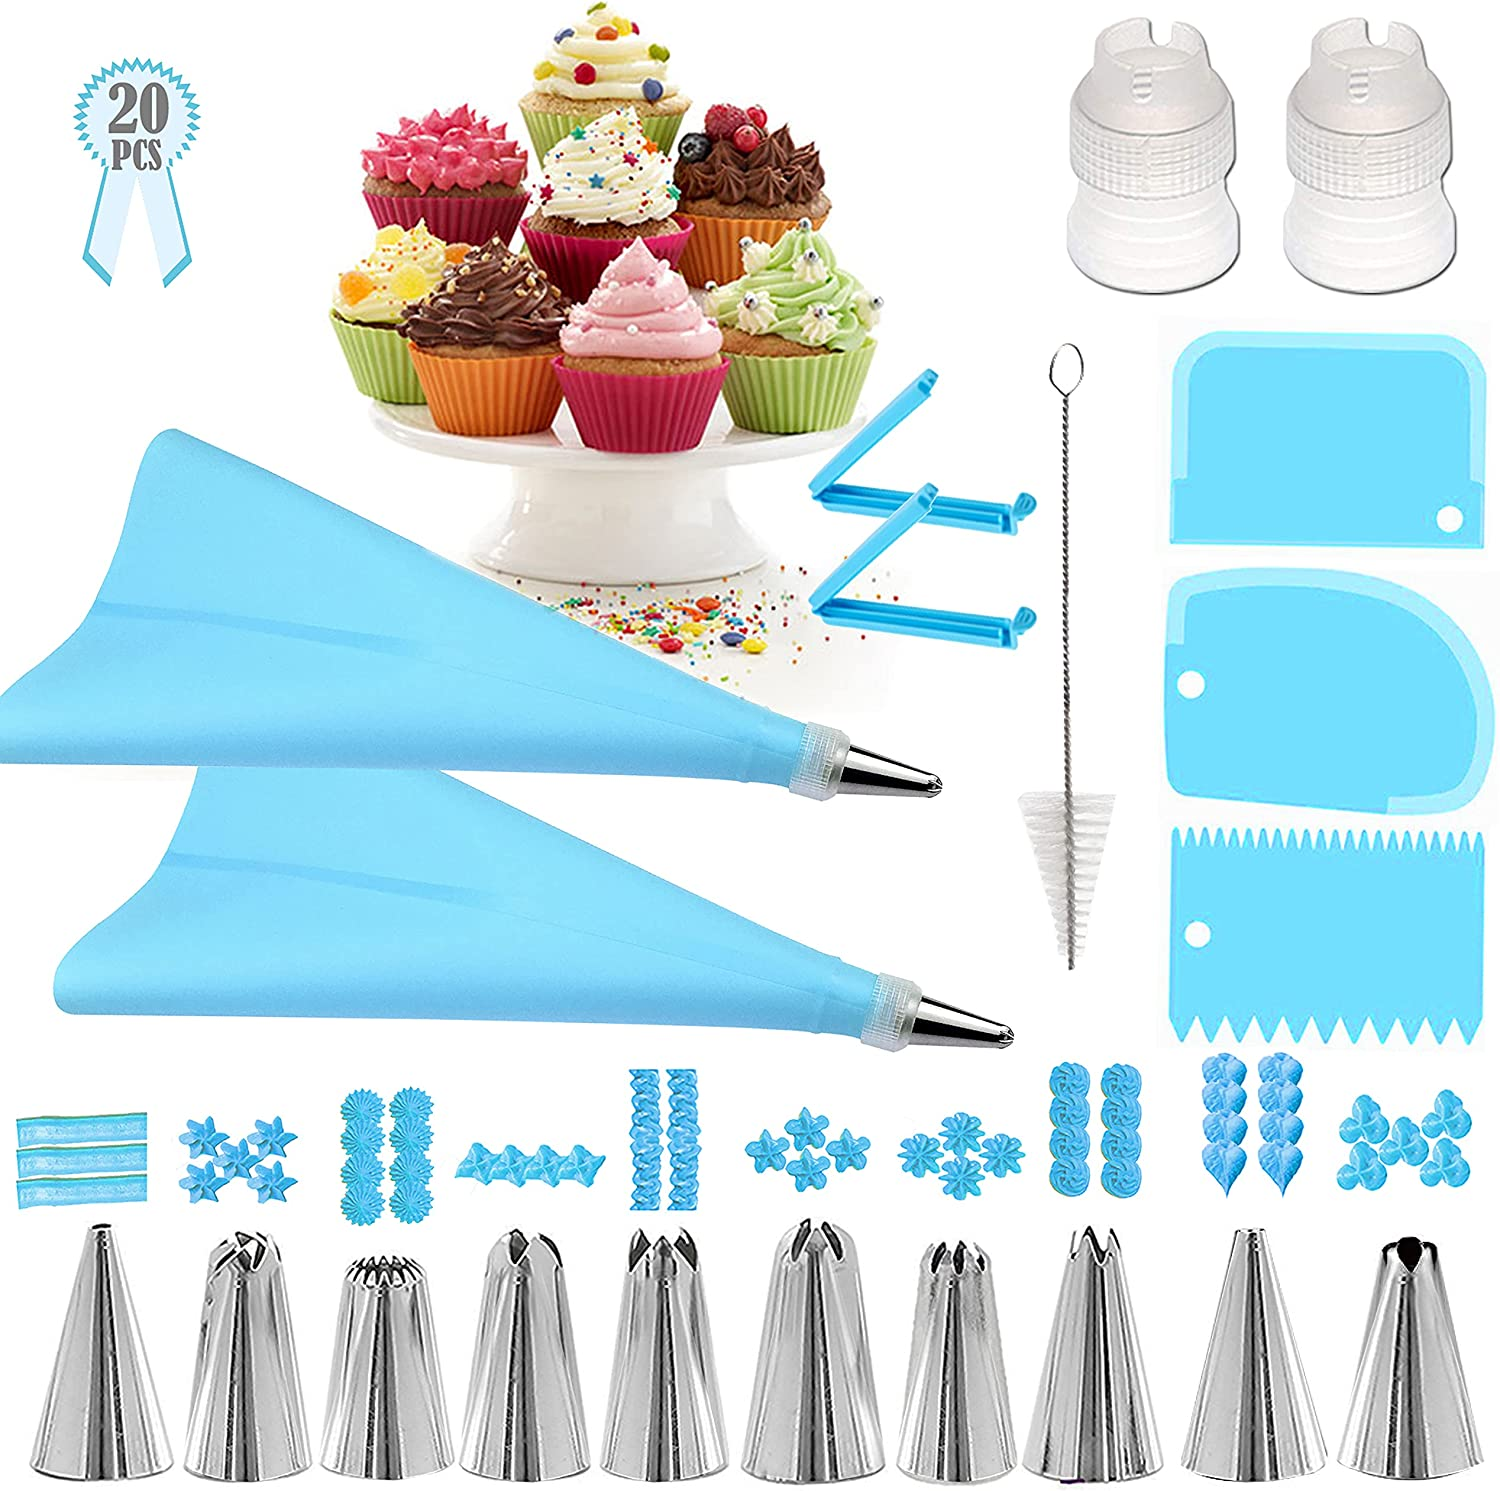 Geioireny Piping Bags and Tips Set, 20Pcs Cake Decorating Kit Tools for Beginner,Icing Tips,Pastry Bag,Smoother, Piping Nozzles Coupler for Baking Supplies(20 Pcs, Blue)